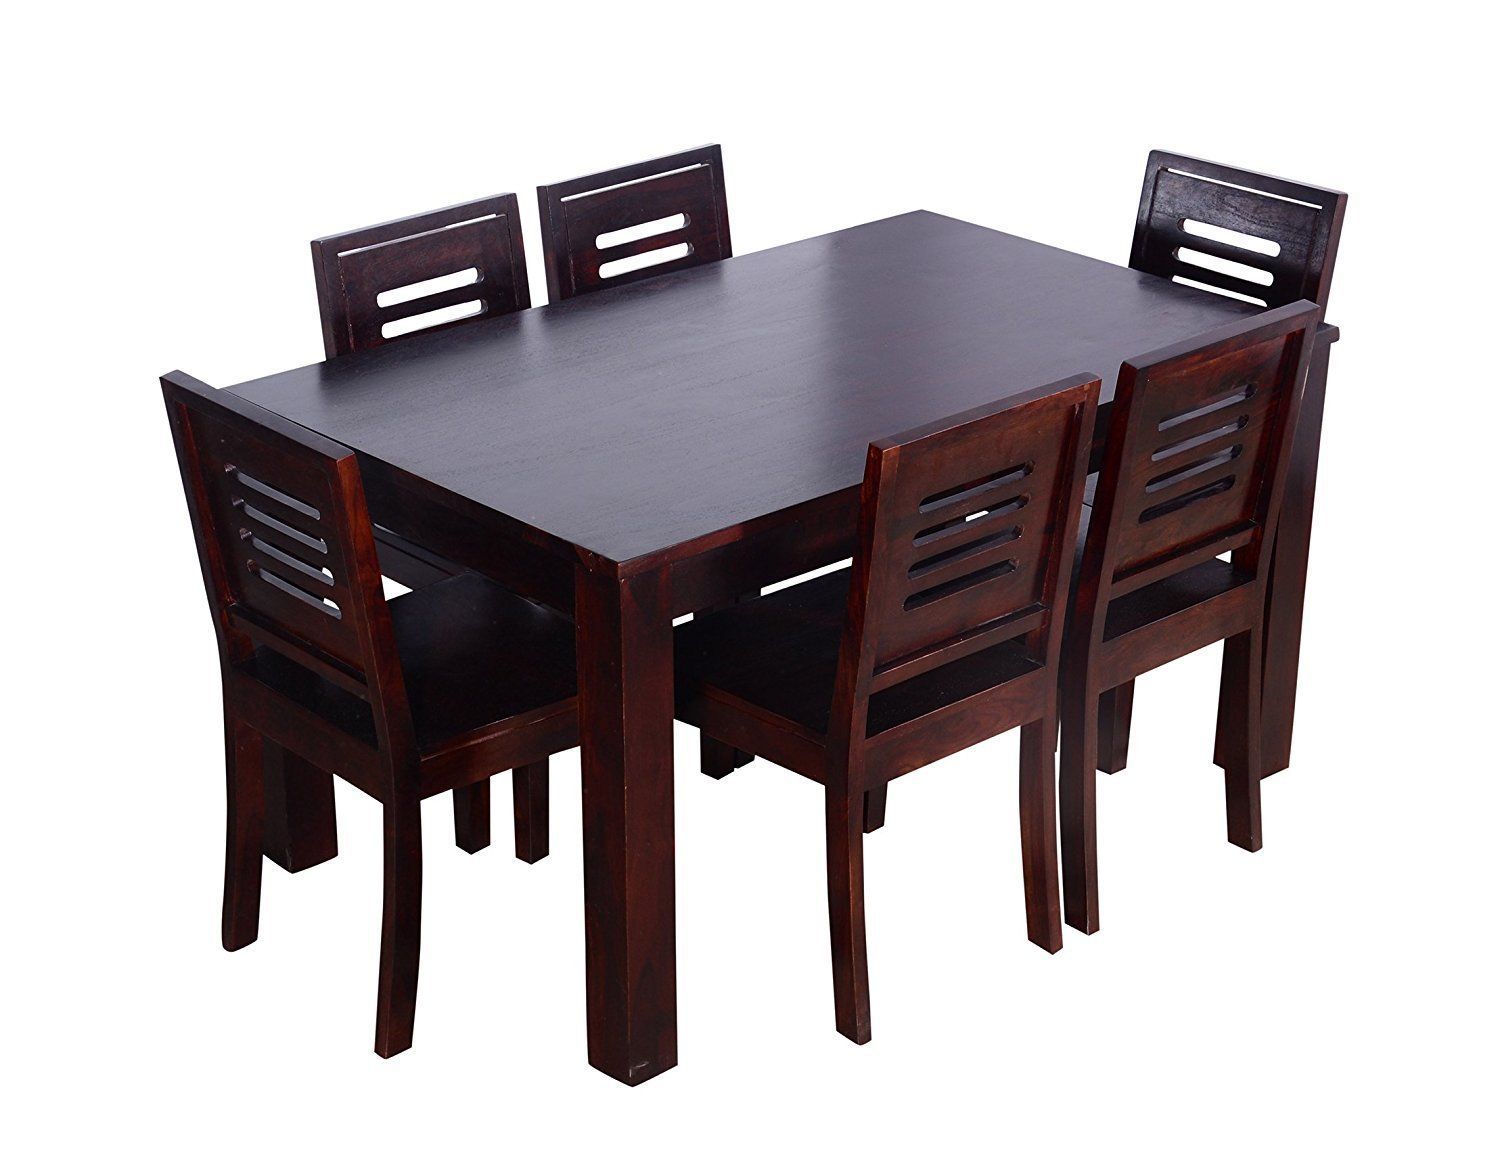 Custom Decor Winsome Groveland Square Dining Table with 6 Chairs 7- Piece -Dark Red Mahogany Amazon.in Home u0026 Kitchen  sc 1 st  Amazon.in & Custom Decor Winsome Groveland Square Dining Table with 6 Chairs 7 ...